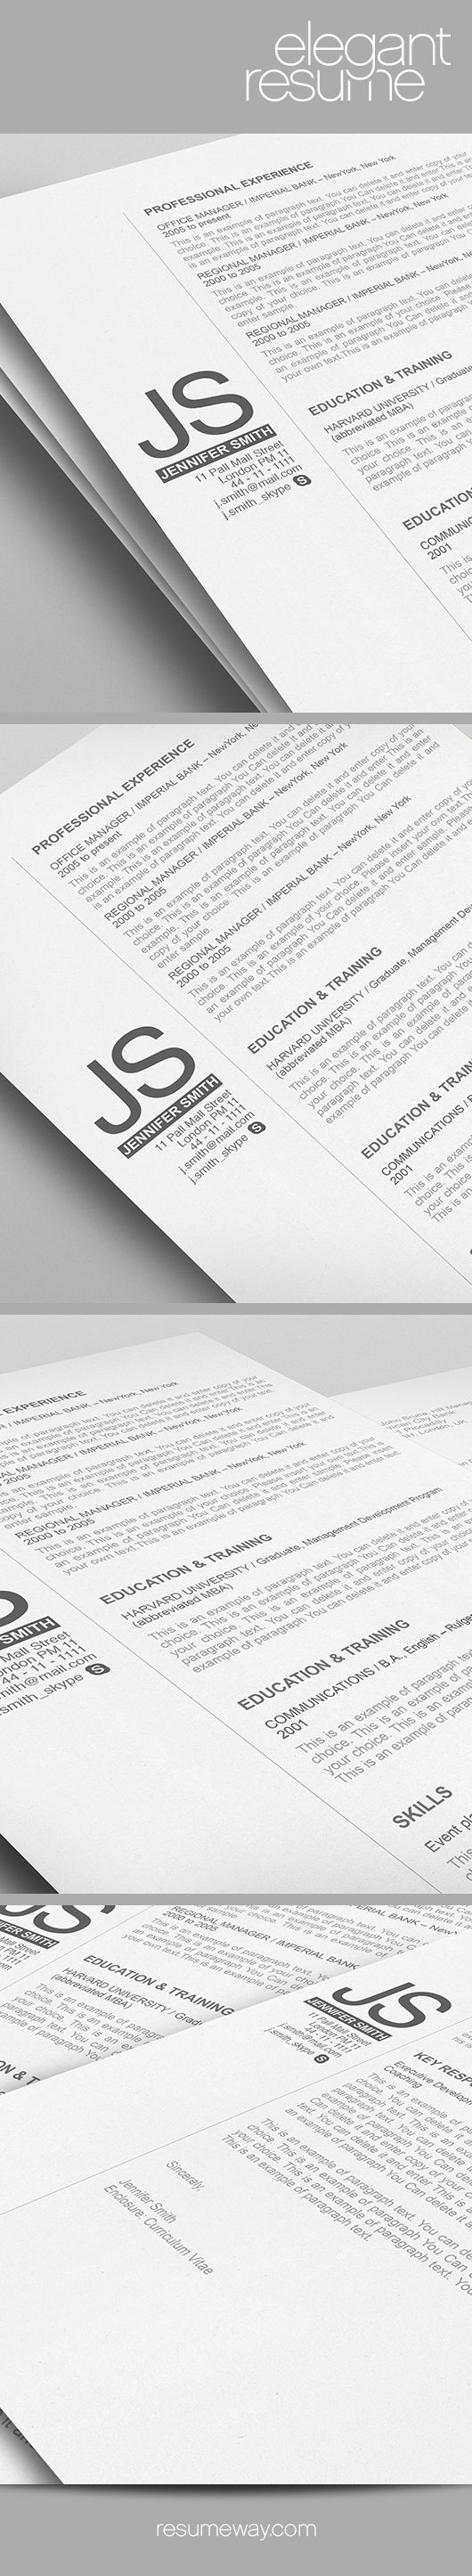 elegant resume template 110540 premium line of resume cover elegant resume template 110540 premium line of resume cover letter templates easy